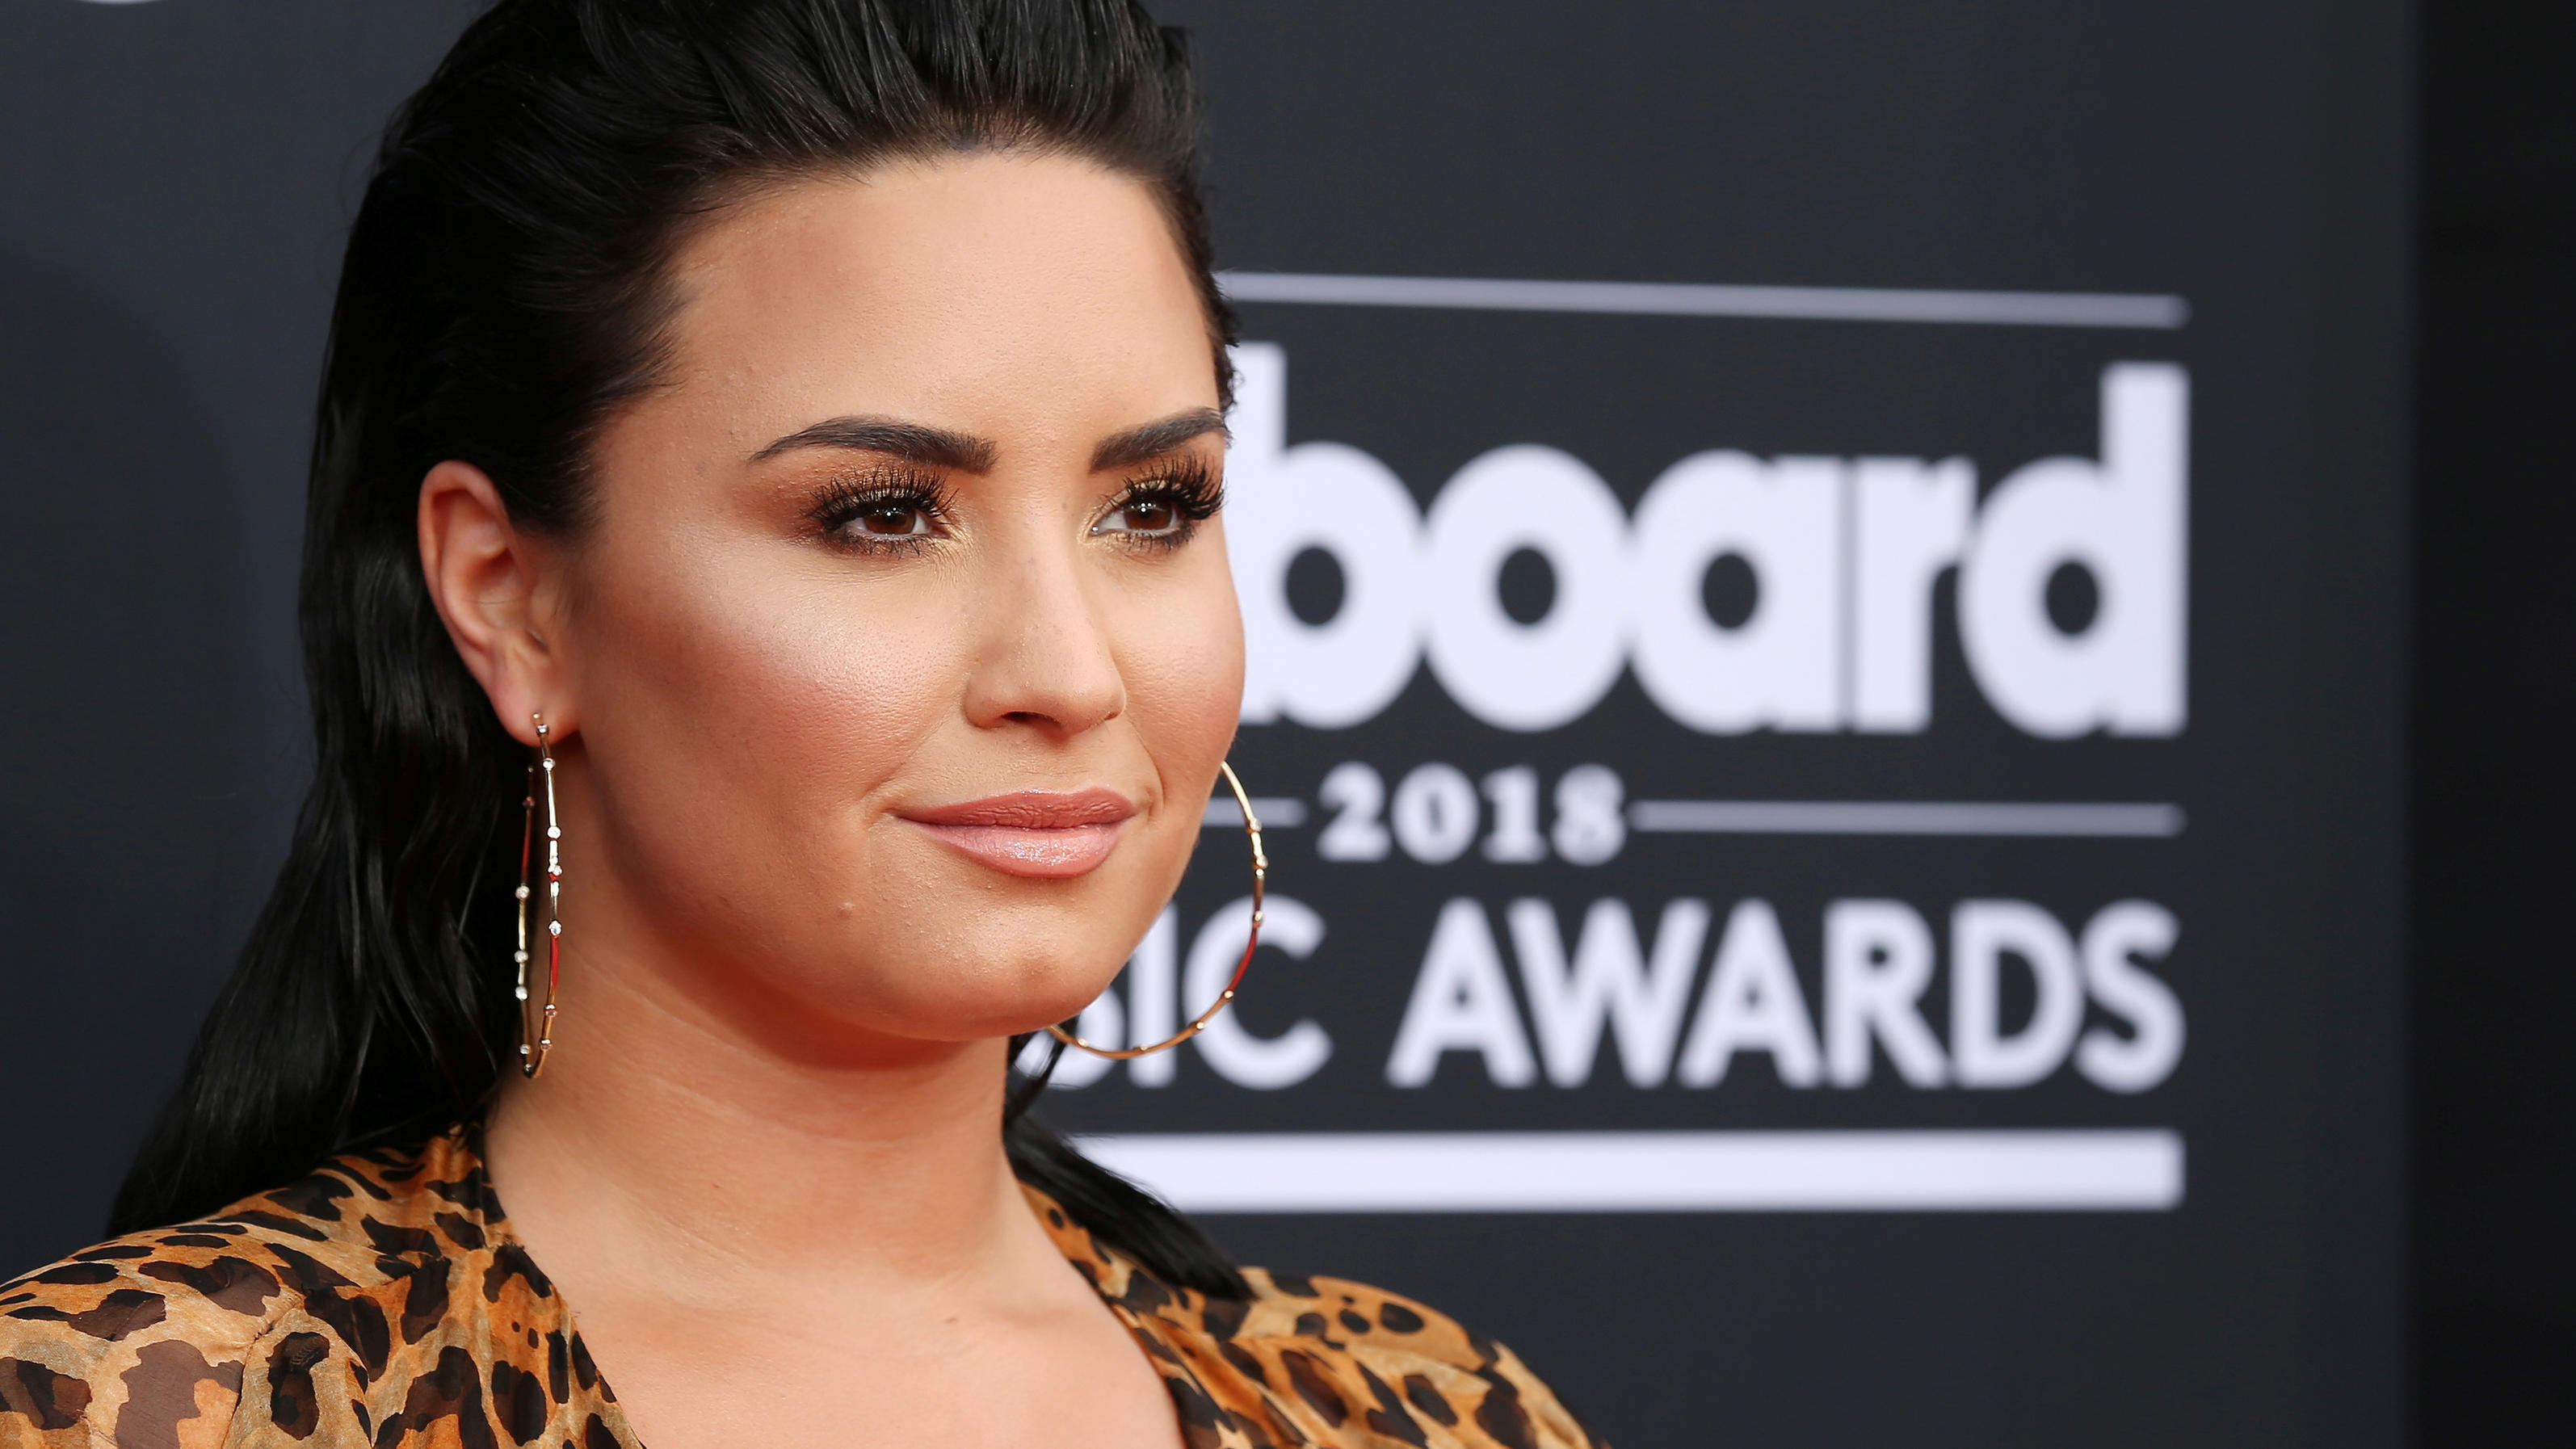 FILE PHOTO: 2018 Billboard Music Awards – Arrivals – Las Vegas, Nevada, U.S., 20/05/2018 – Demi Lovato. REUTERS/Steve Marcus/File Photo